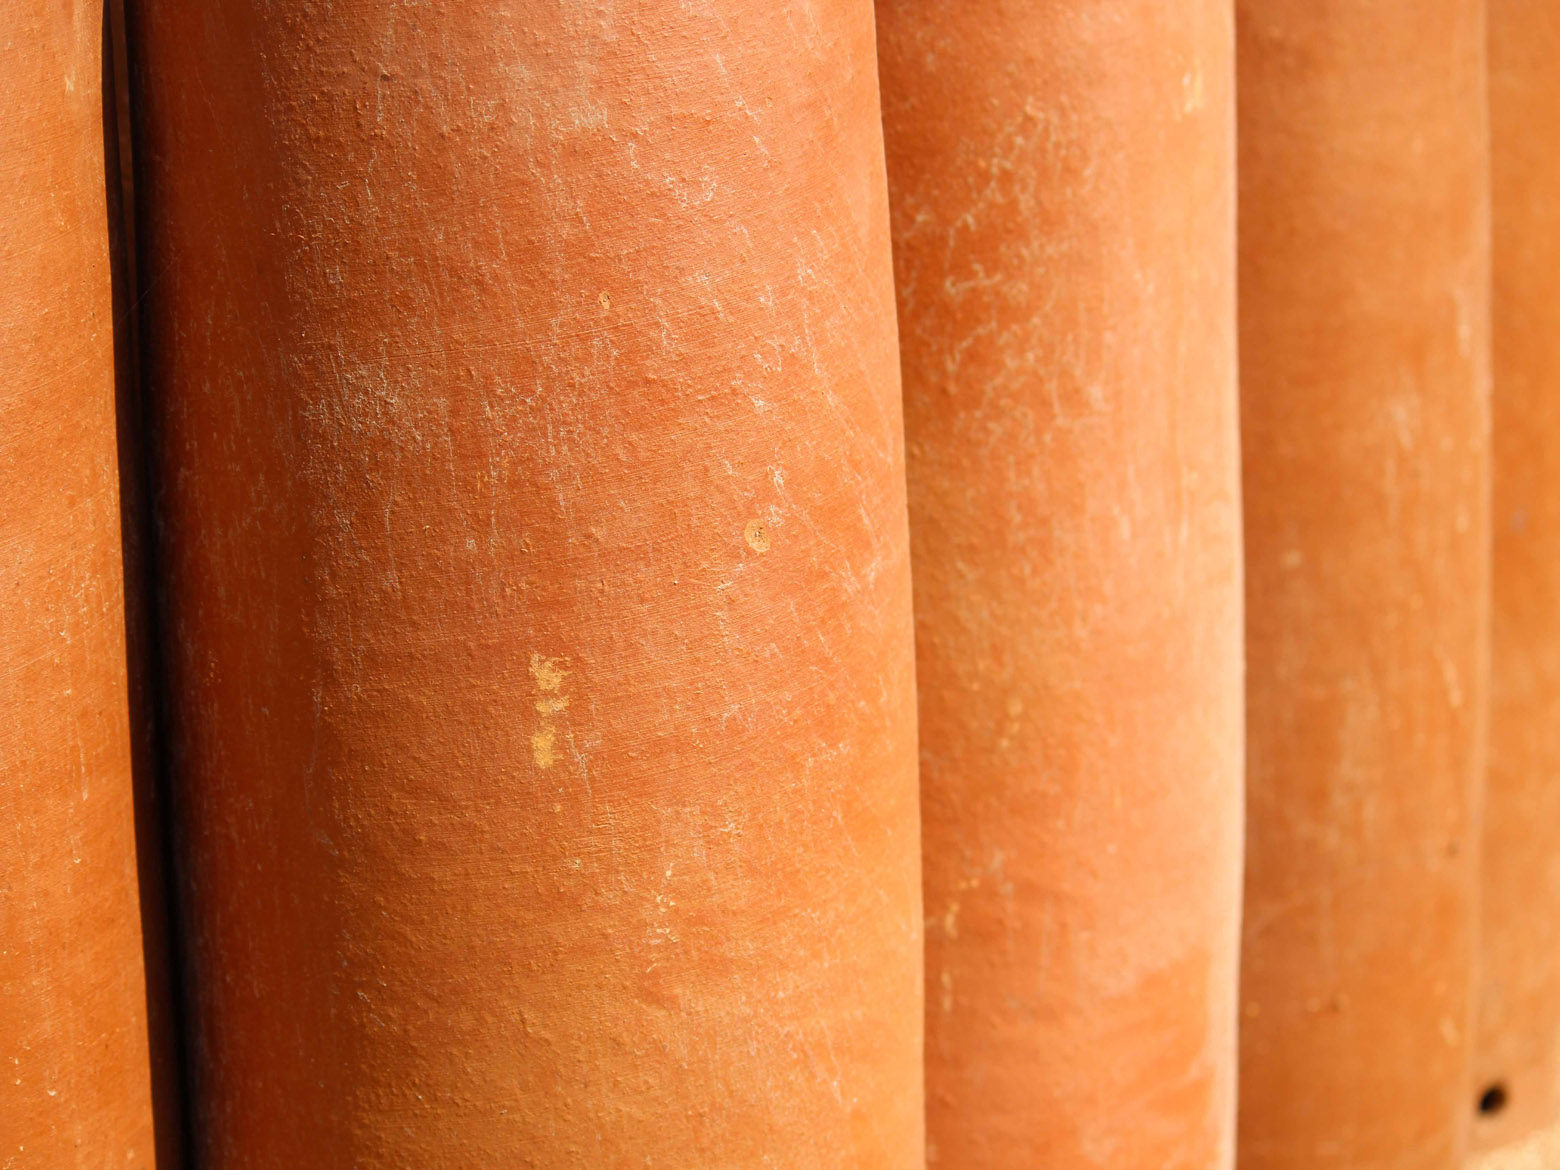 clay pots - Backgrounds